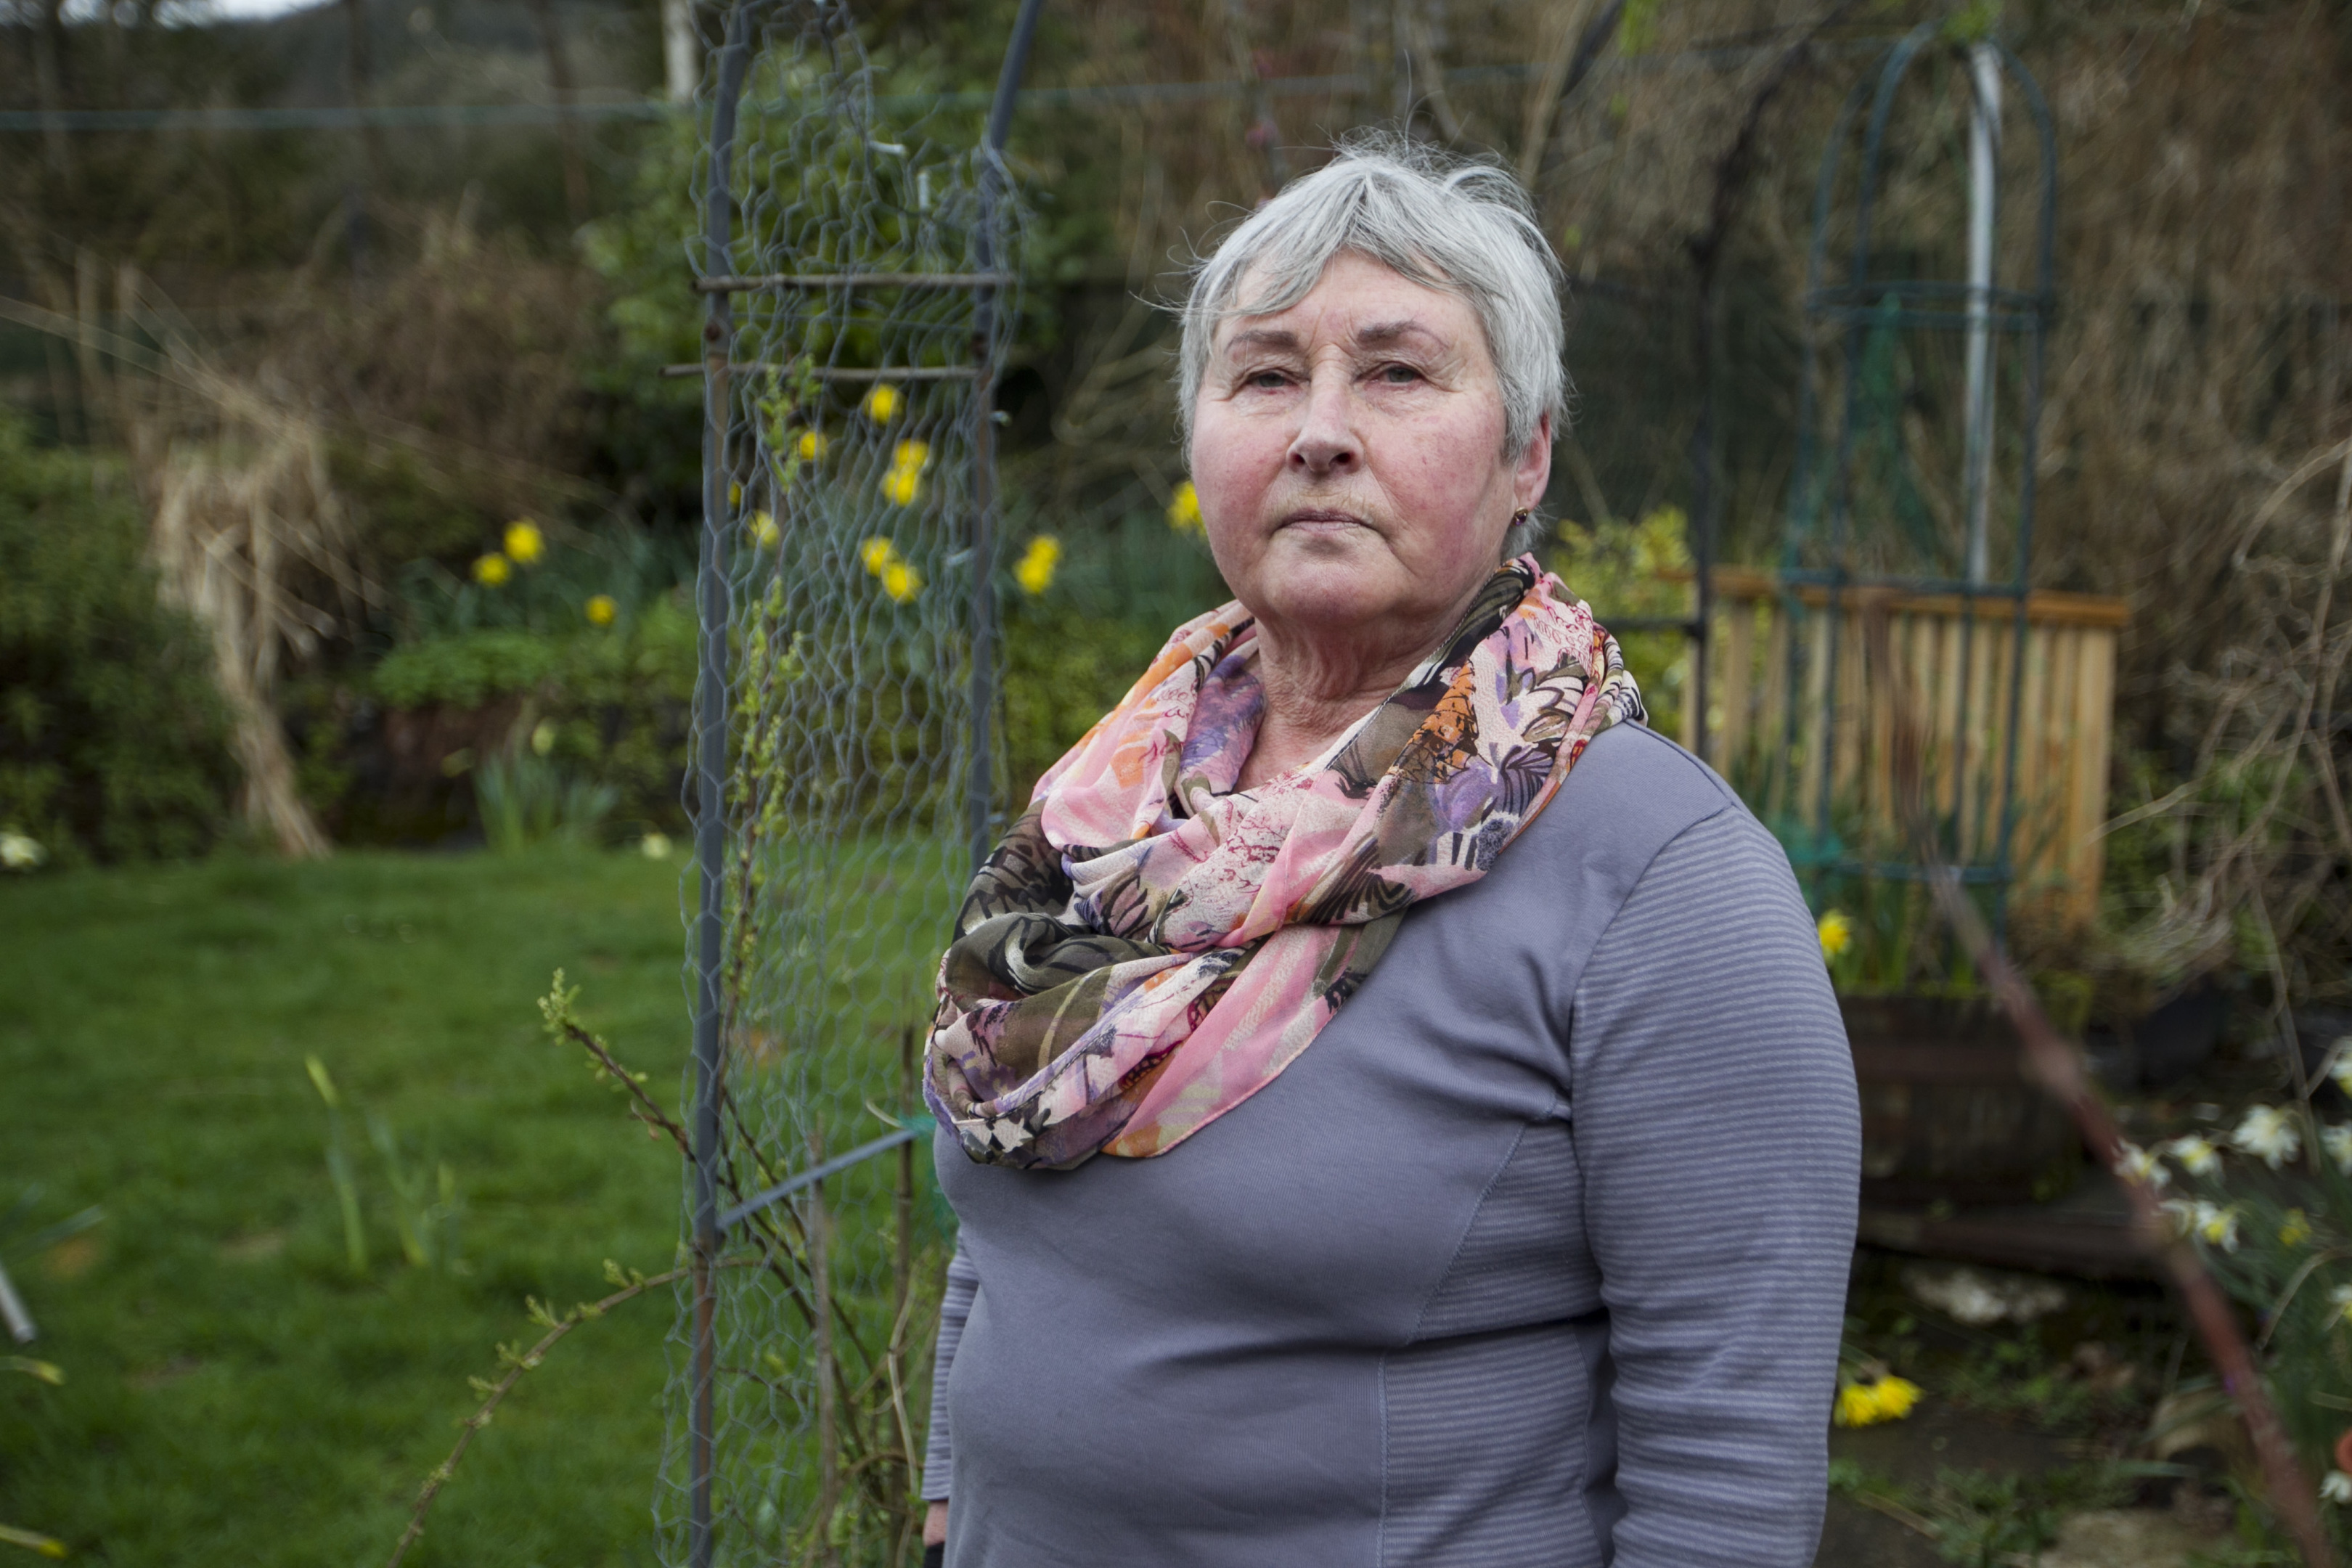 Irene Cameron was the victim of a scam on Facebook (Andrew Cawley / DC Thomson)